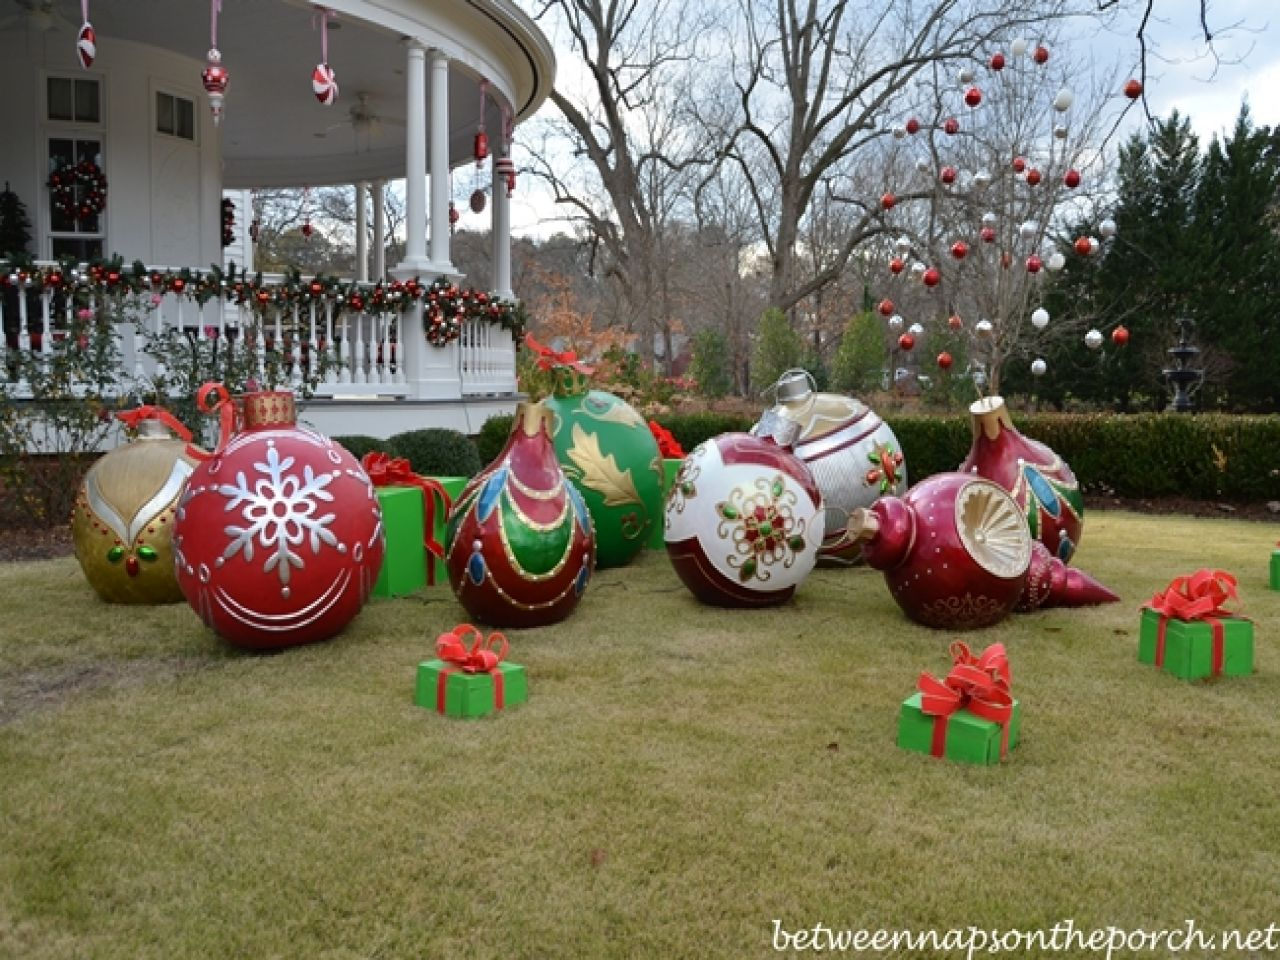 Diy outdoor christmas decorations big christmas ornaments diy outdoor christmas decorations big christmas ornaments decorations large christmas lawn ornaments solutioingenieria Choice Image